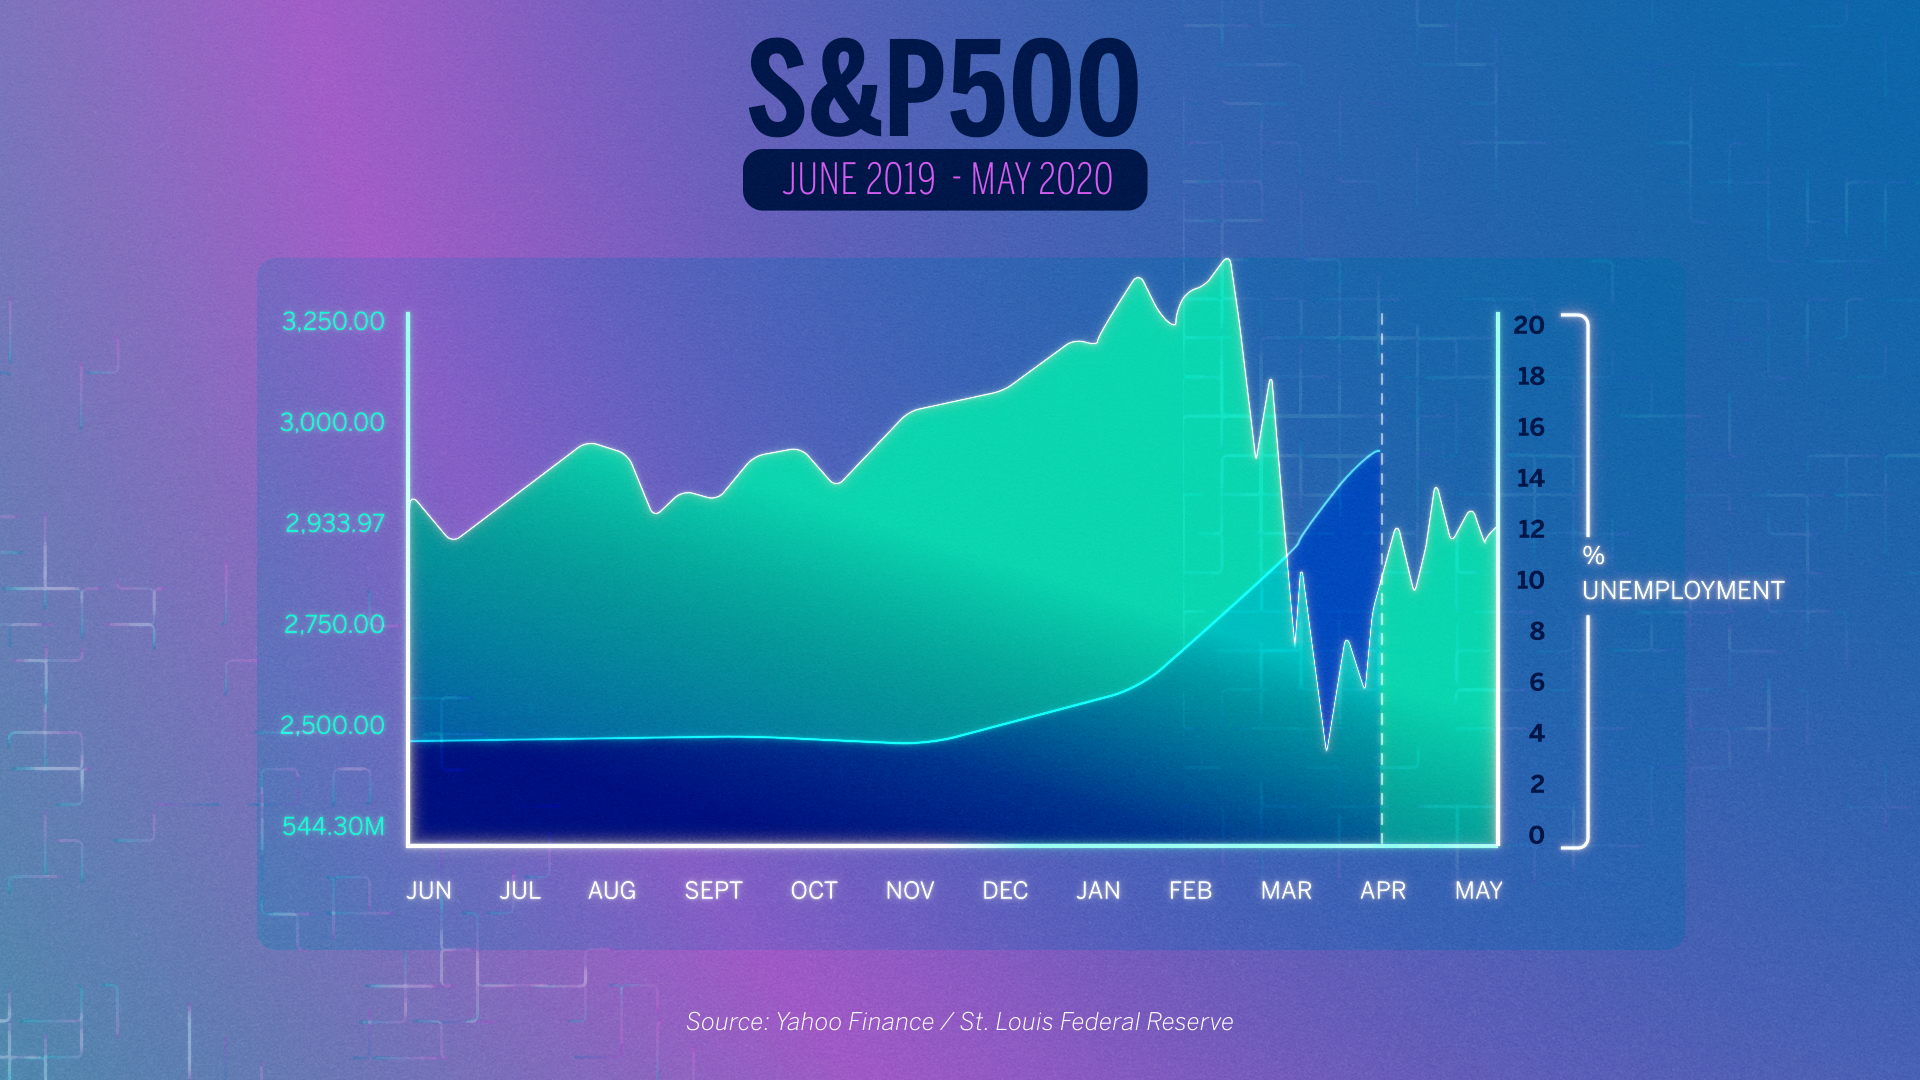 Why The Stock Market Is Up While The Economy Is Down